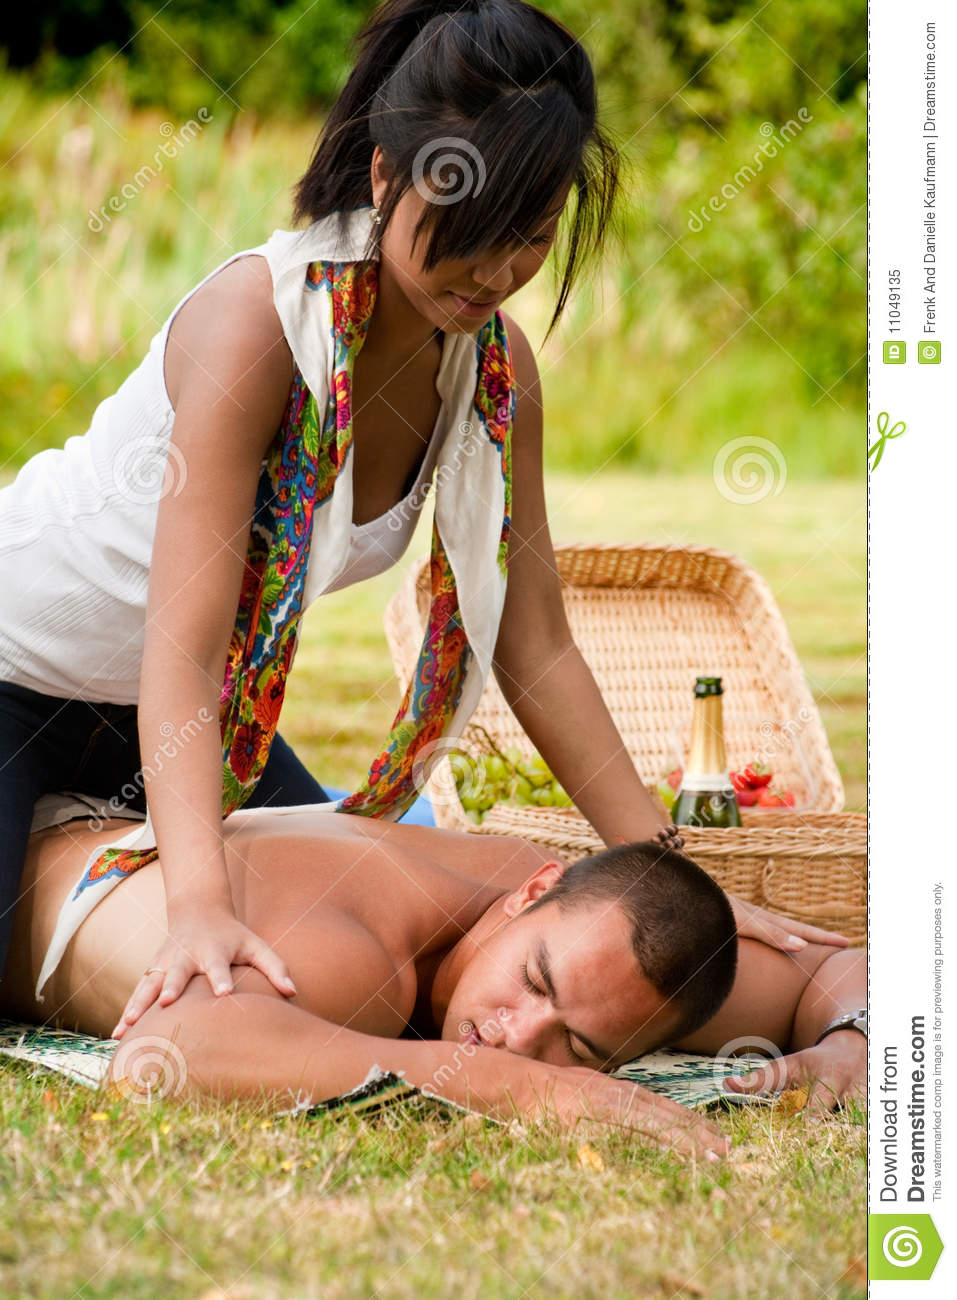 A massage for him